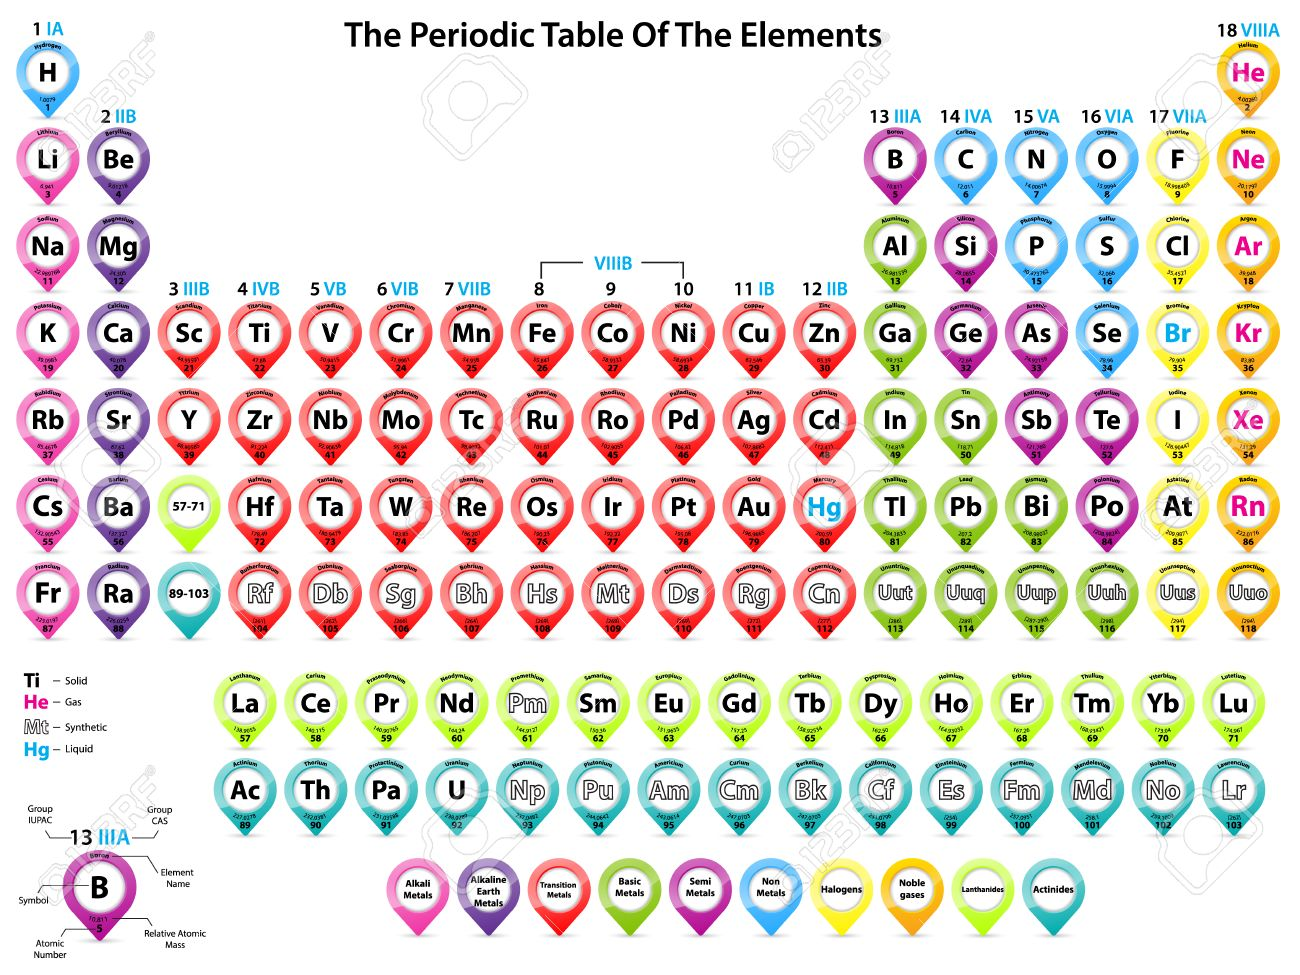 Nys regents periodic table gallery periodic table images basher science periodic table images periodic table images detailed periodic table 1510250449 watchinf gamestrikefo images gamestrikefo gamestrikefo Choice Image